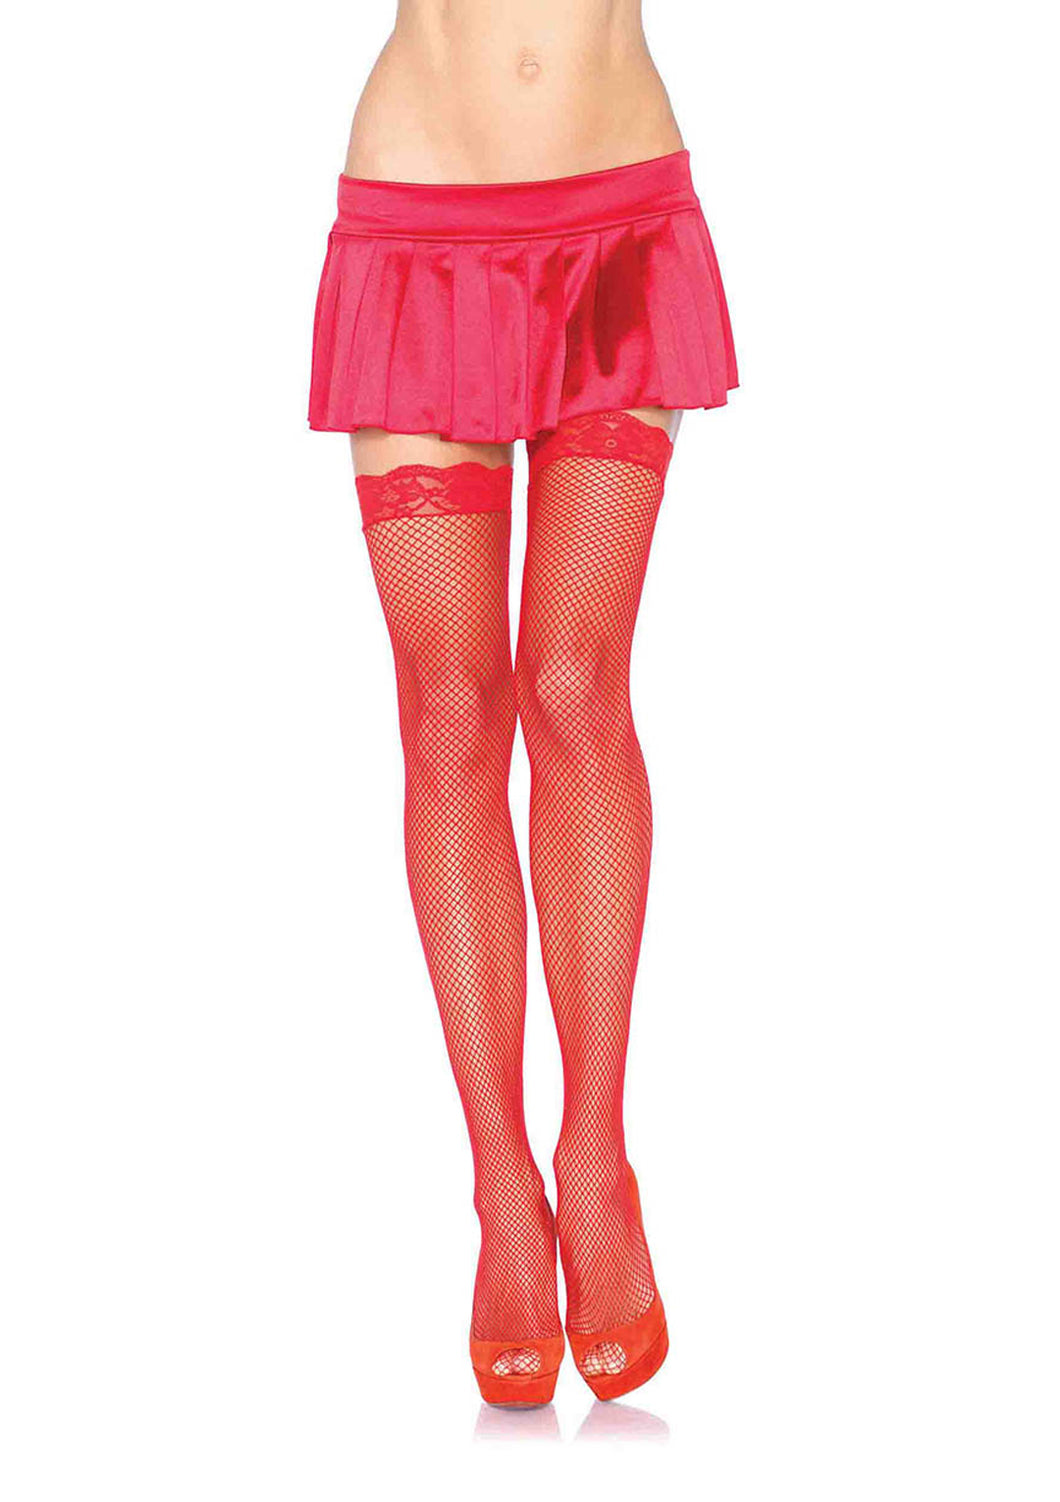 Leg Avenue Fishnet Stockings - Black/Red/White